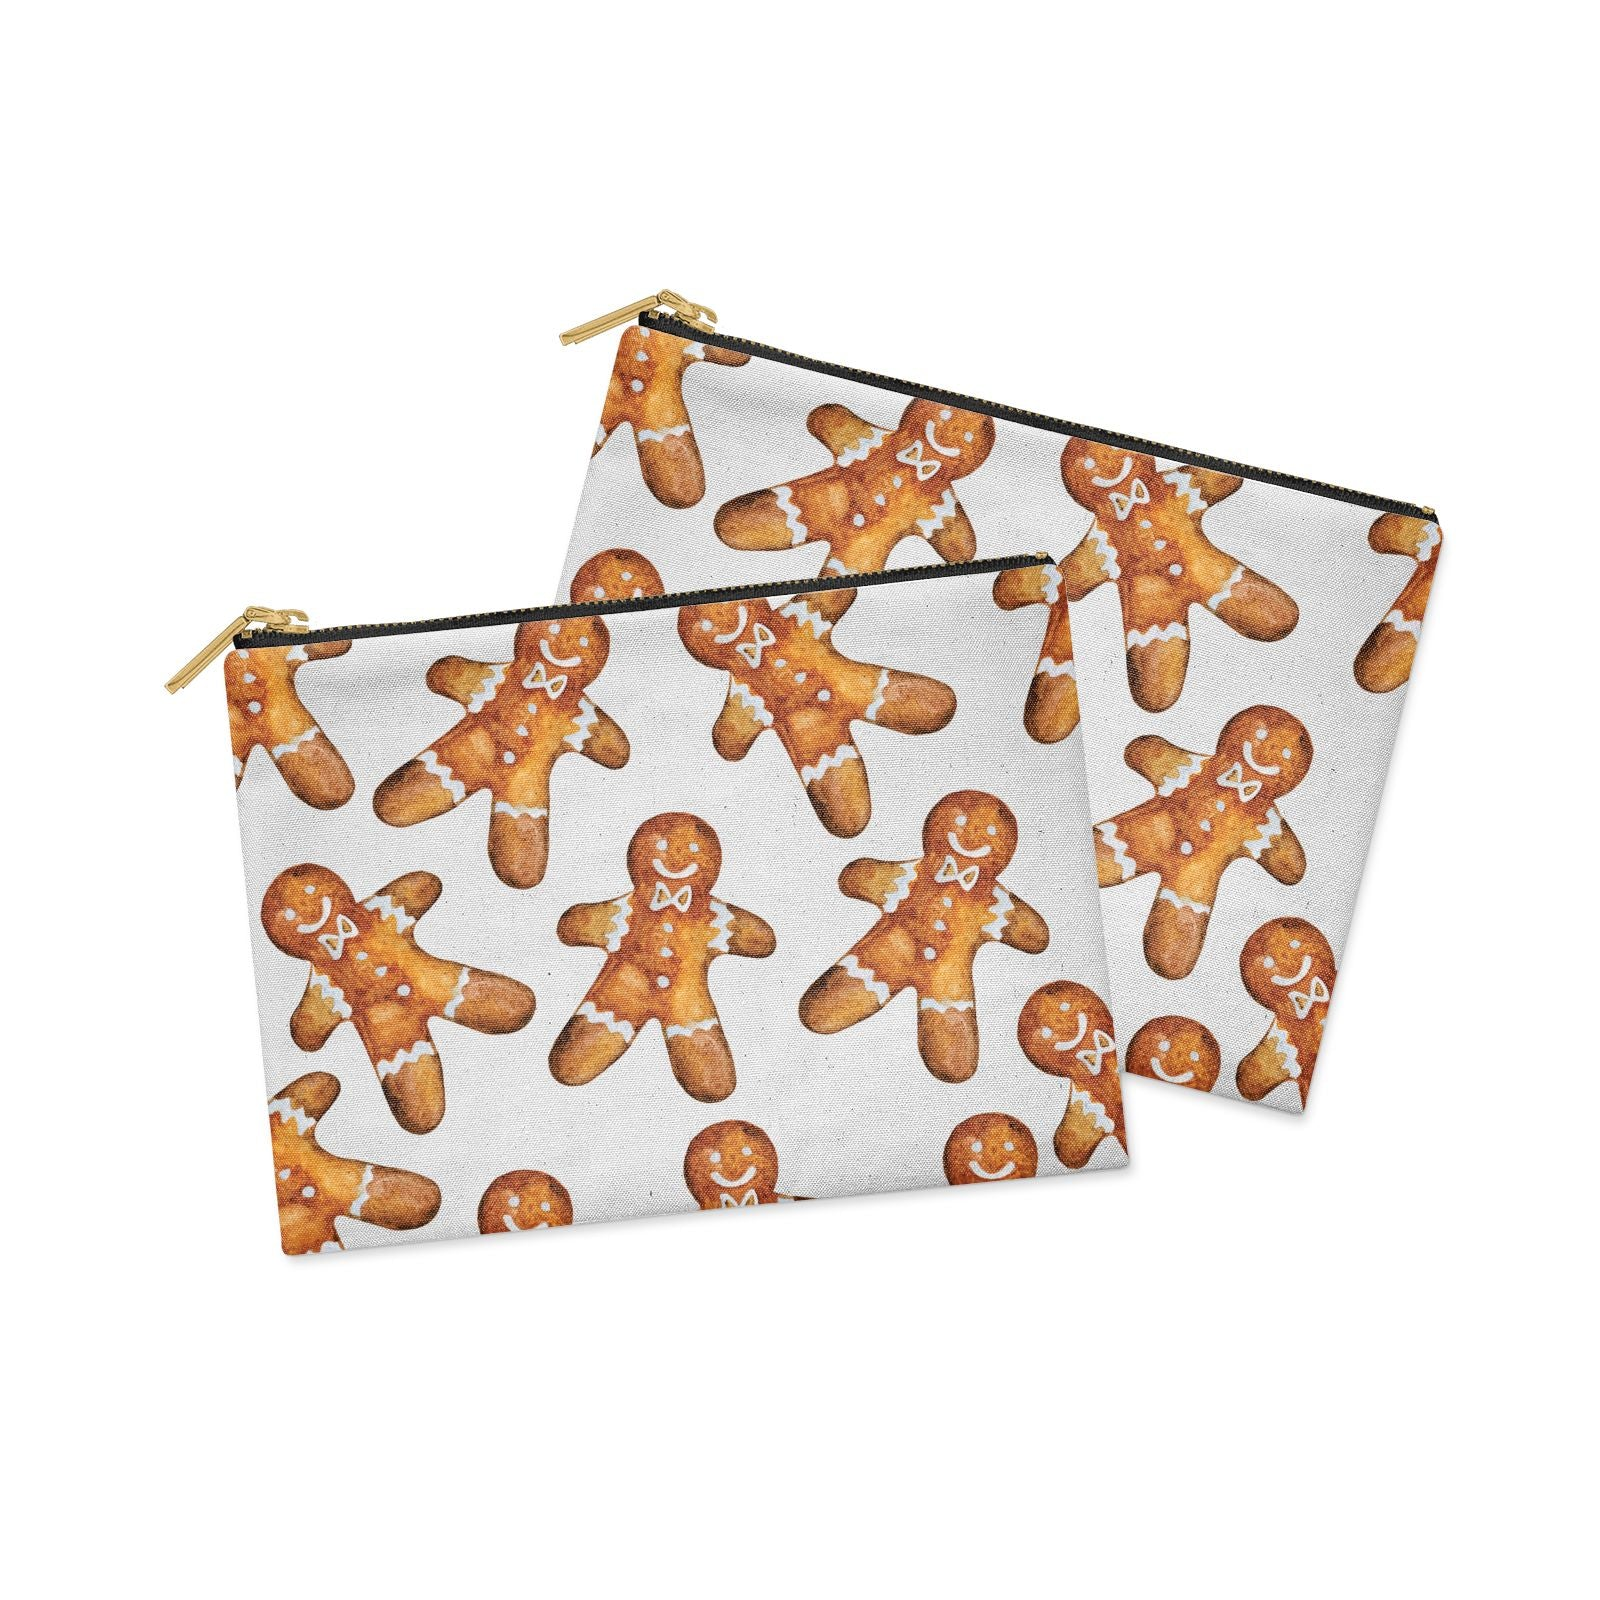 Christmas Gingerbread Man Clutch Bag Zipper Pouch Alternative View